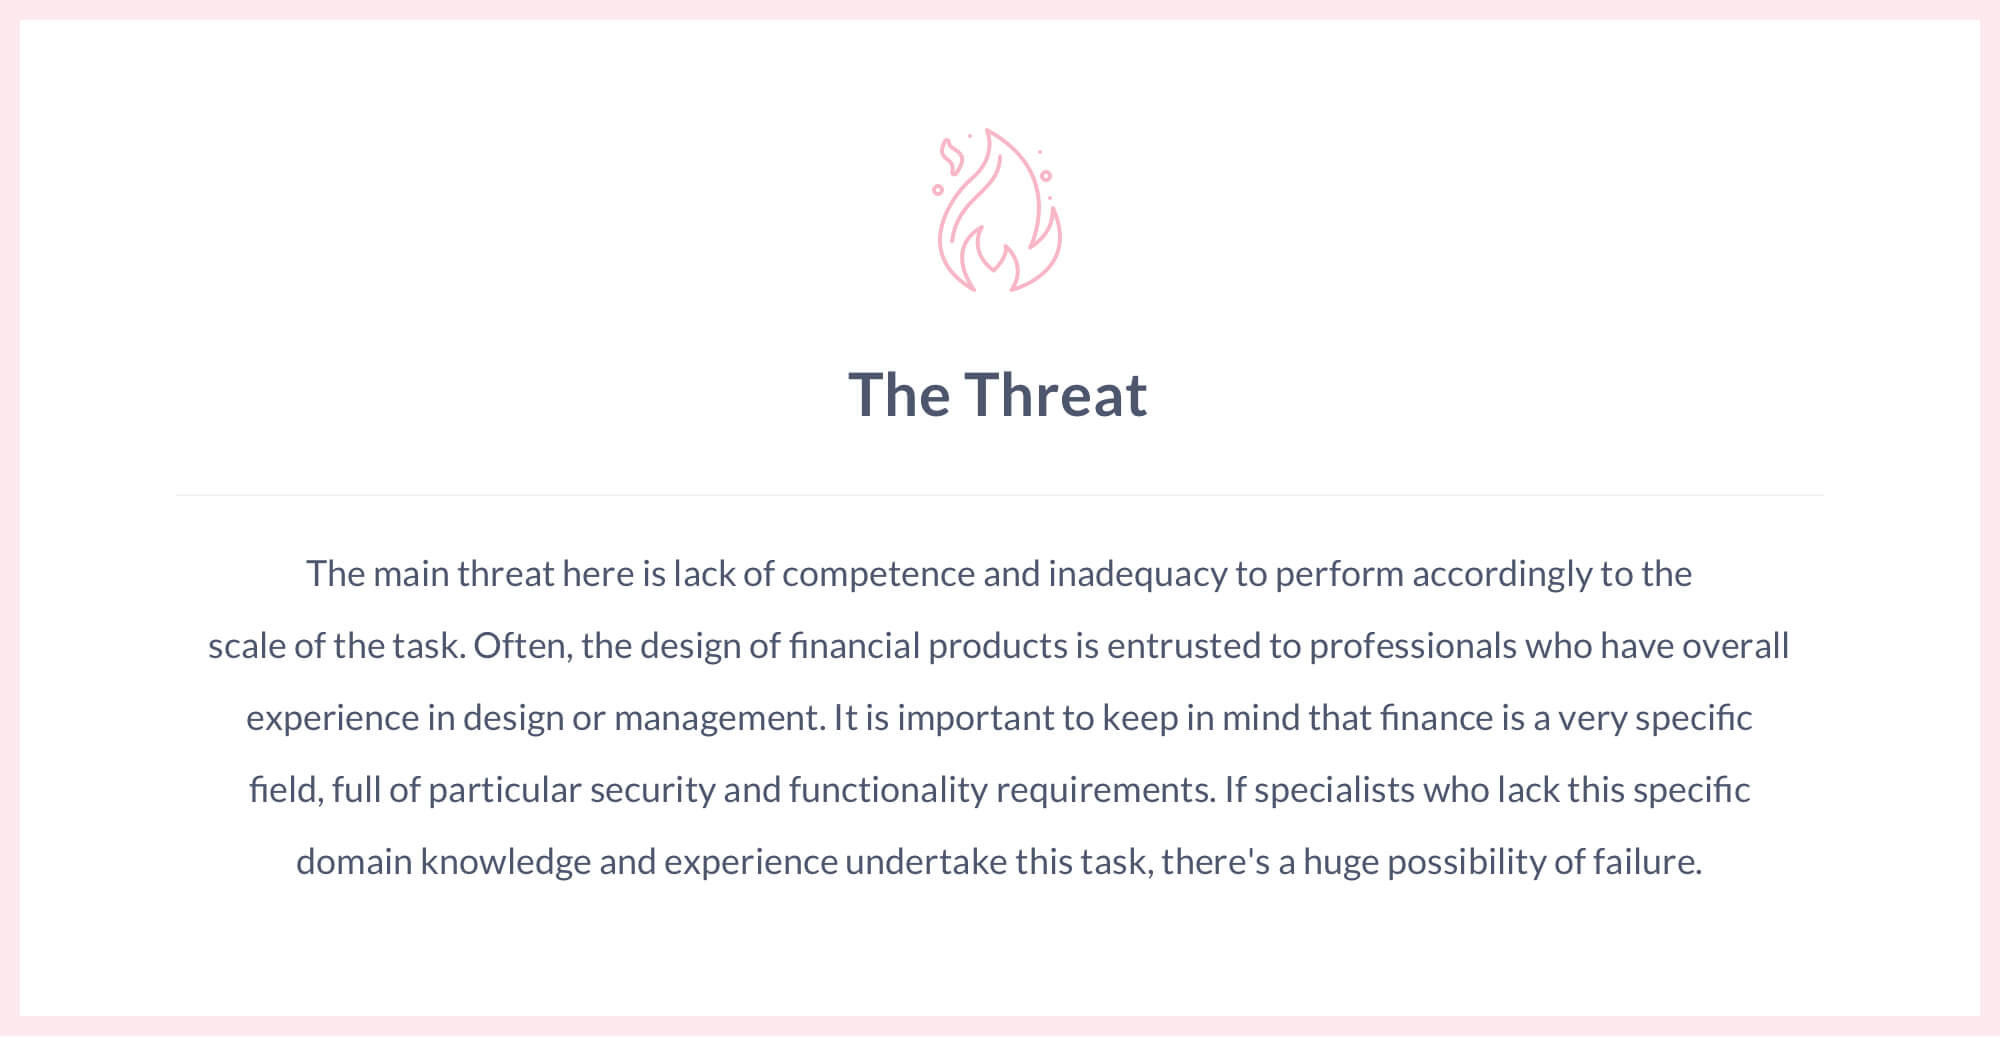 financial-product-design-pyramid-team-threat